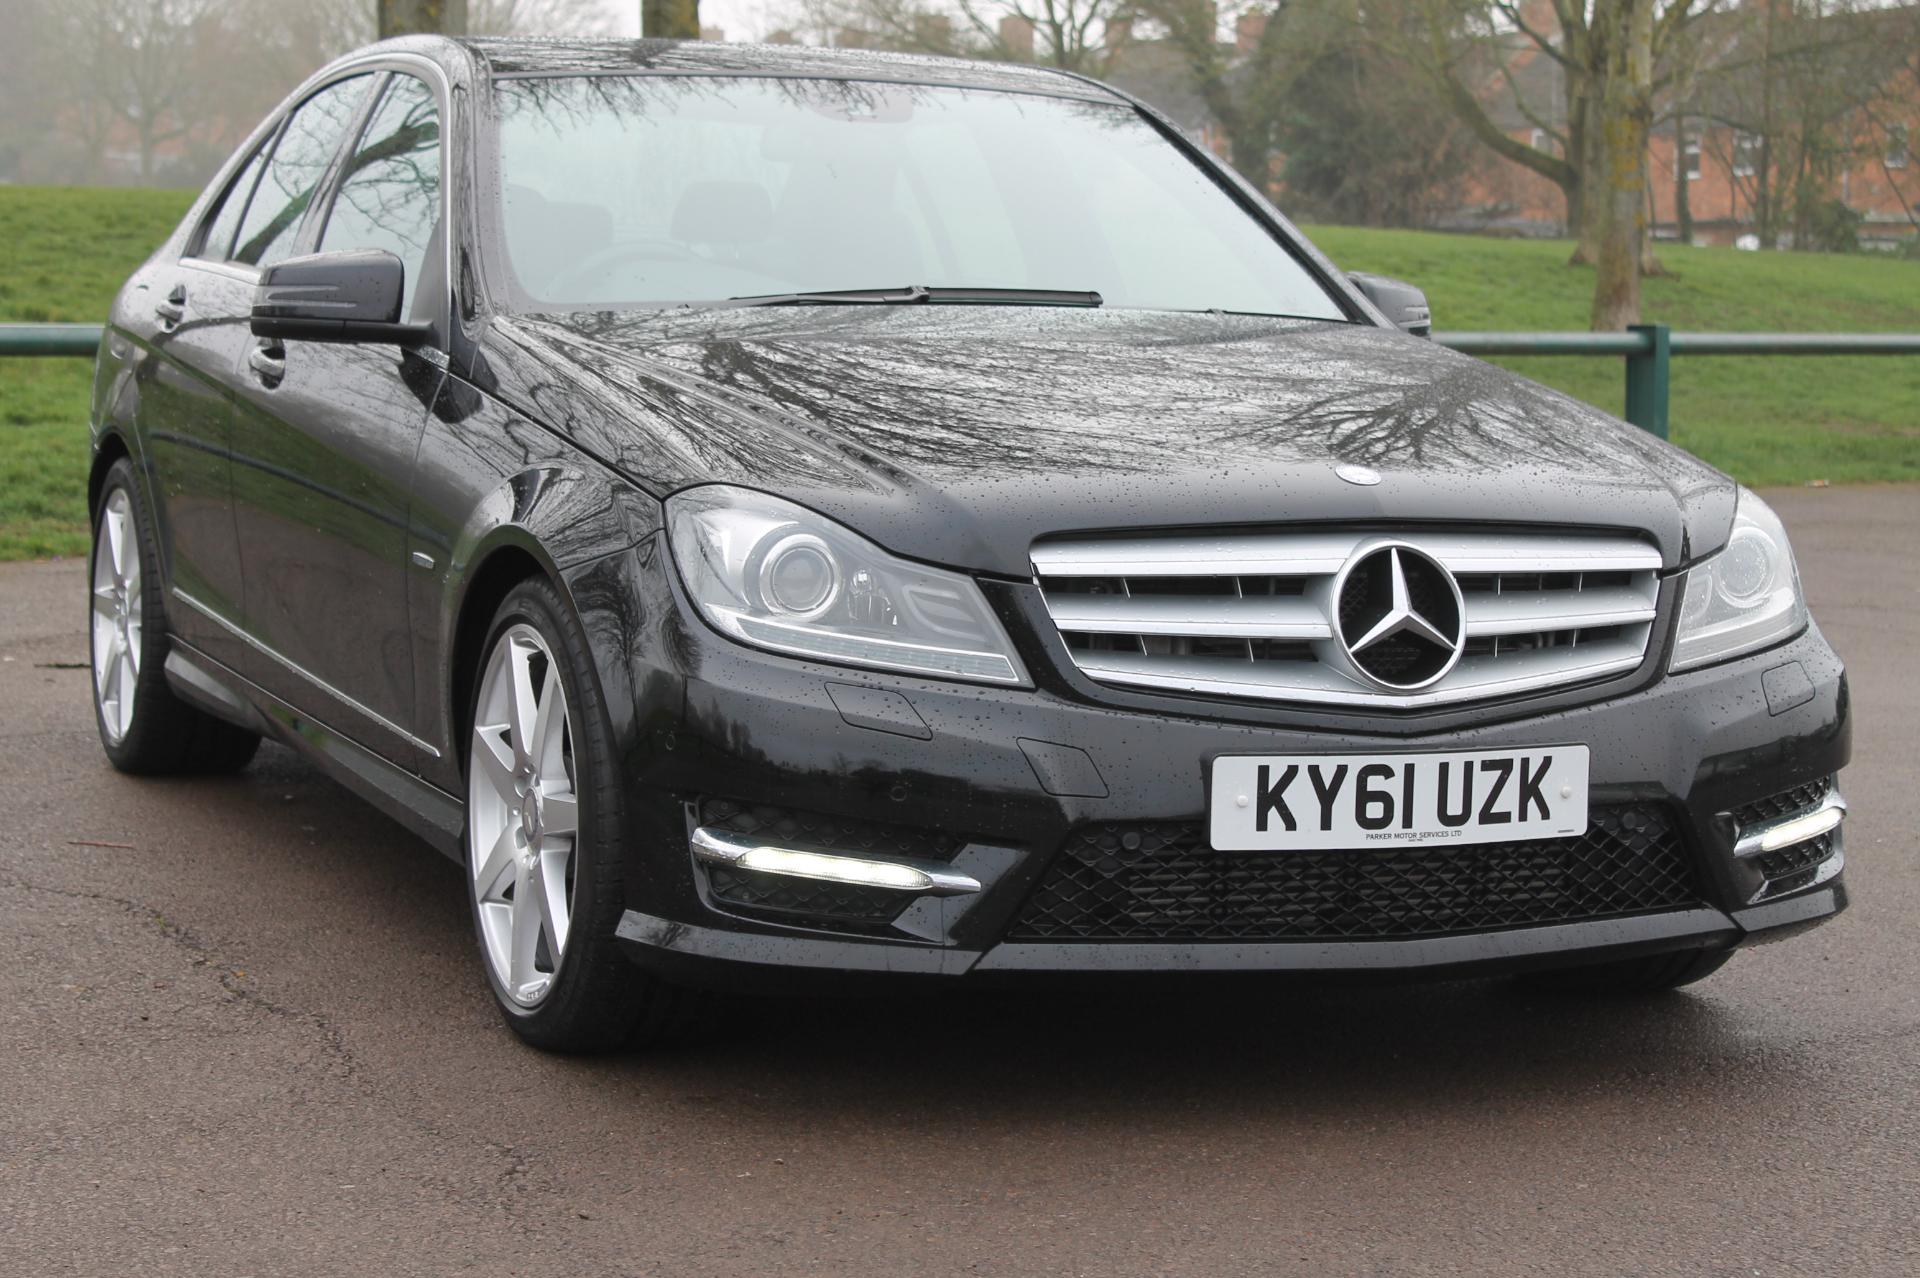 cdi sale south auto cardiff wales used mercedes van citywide estate amg for benz listings blue sport sales f